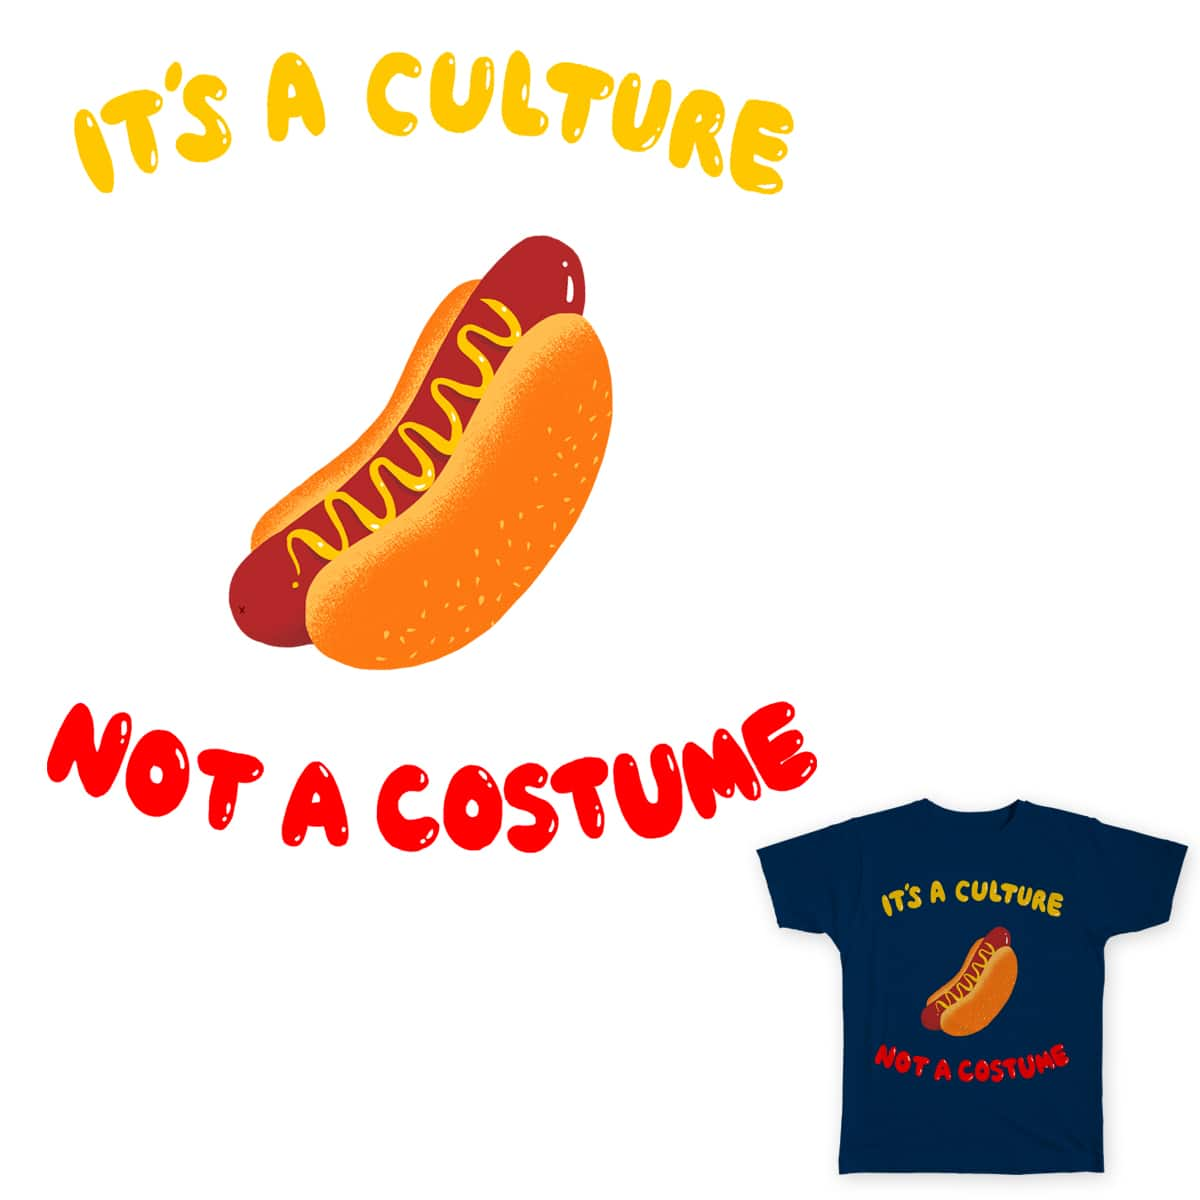 it's hotdogs by mike bautista on Threadless